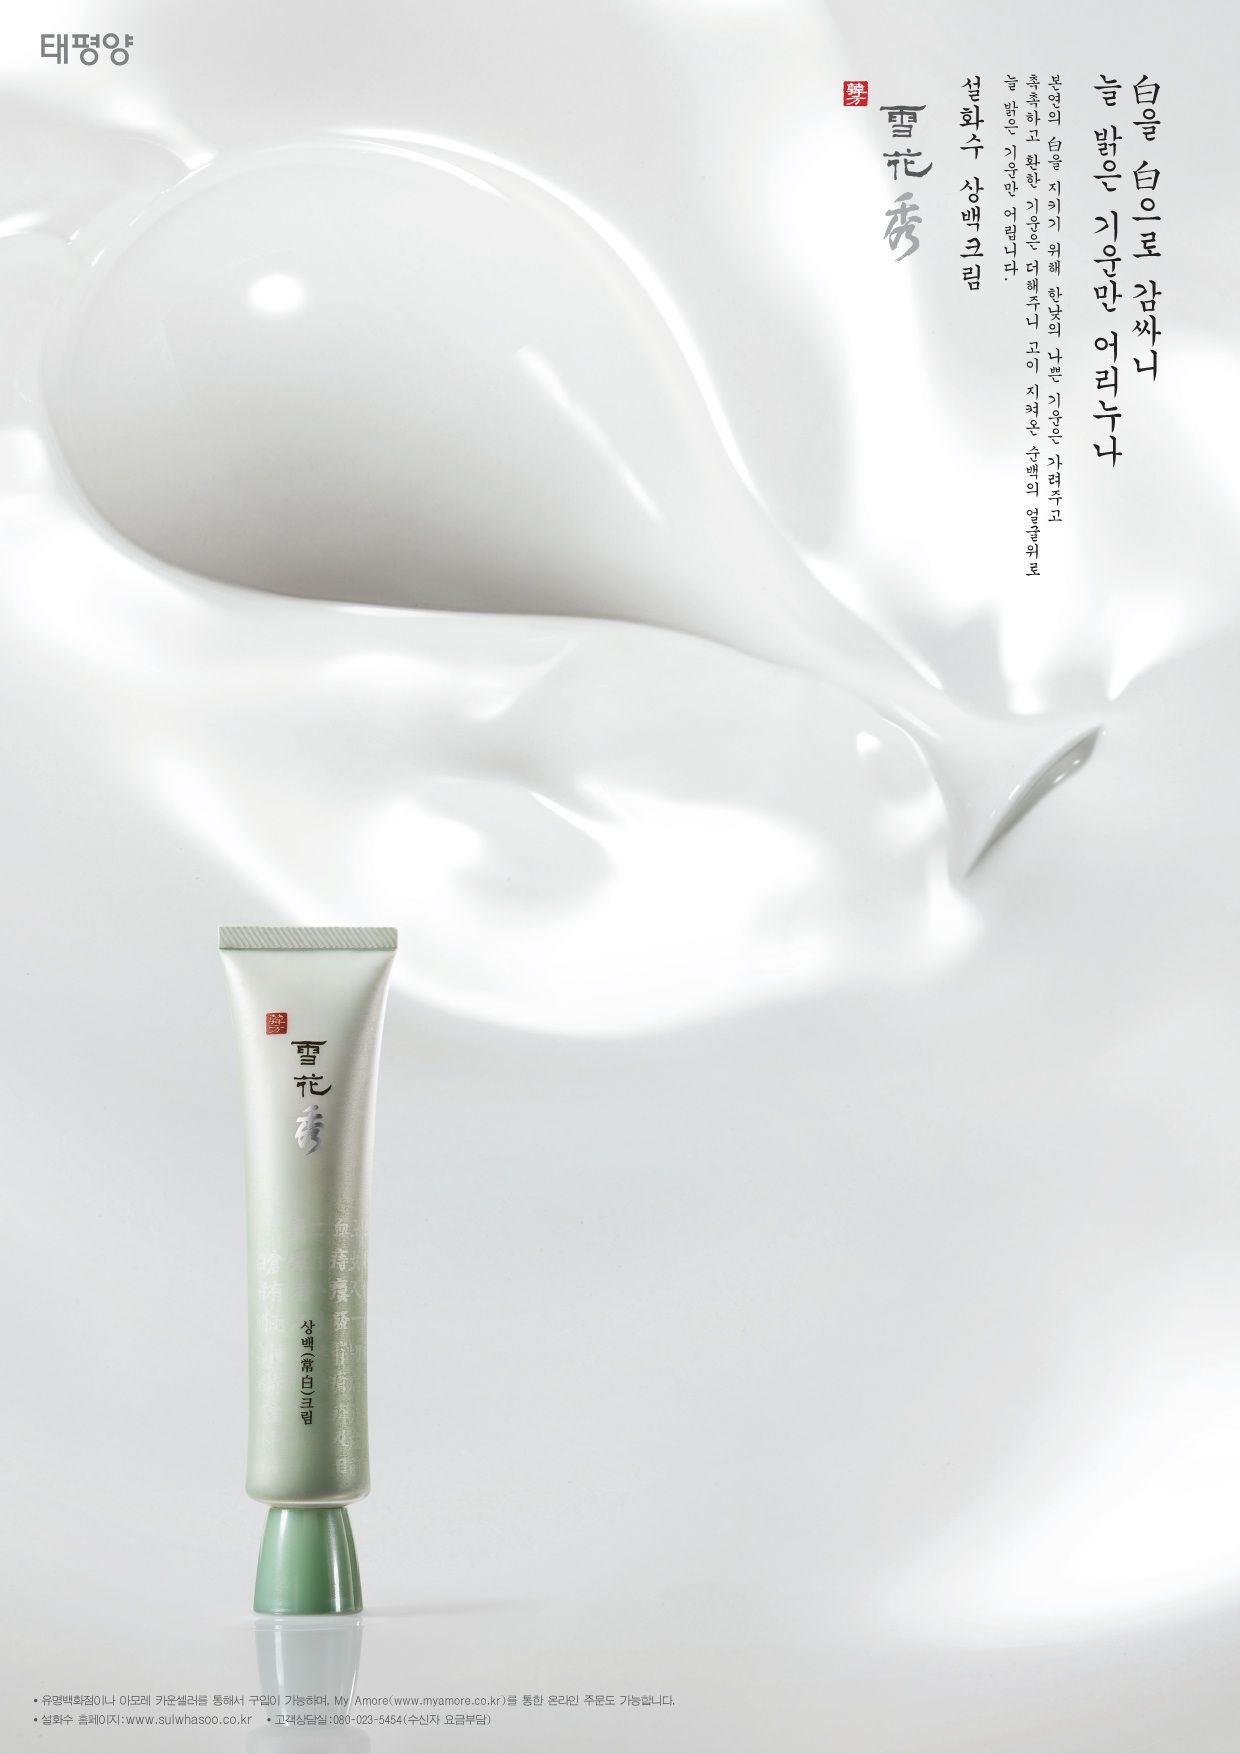 Pin by KingKing on Sulwhasoo Advertising Cosmetic design